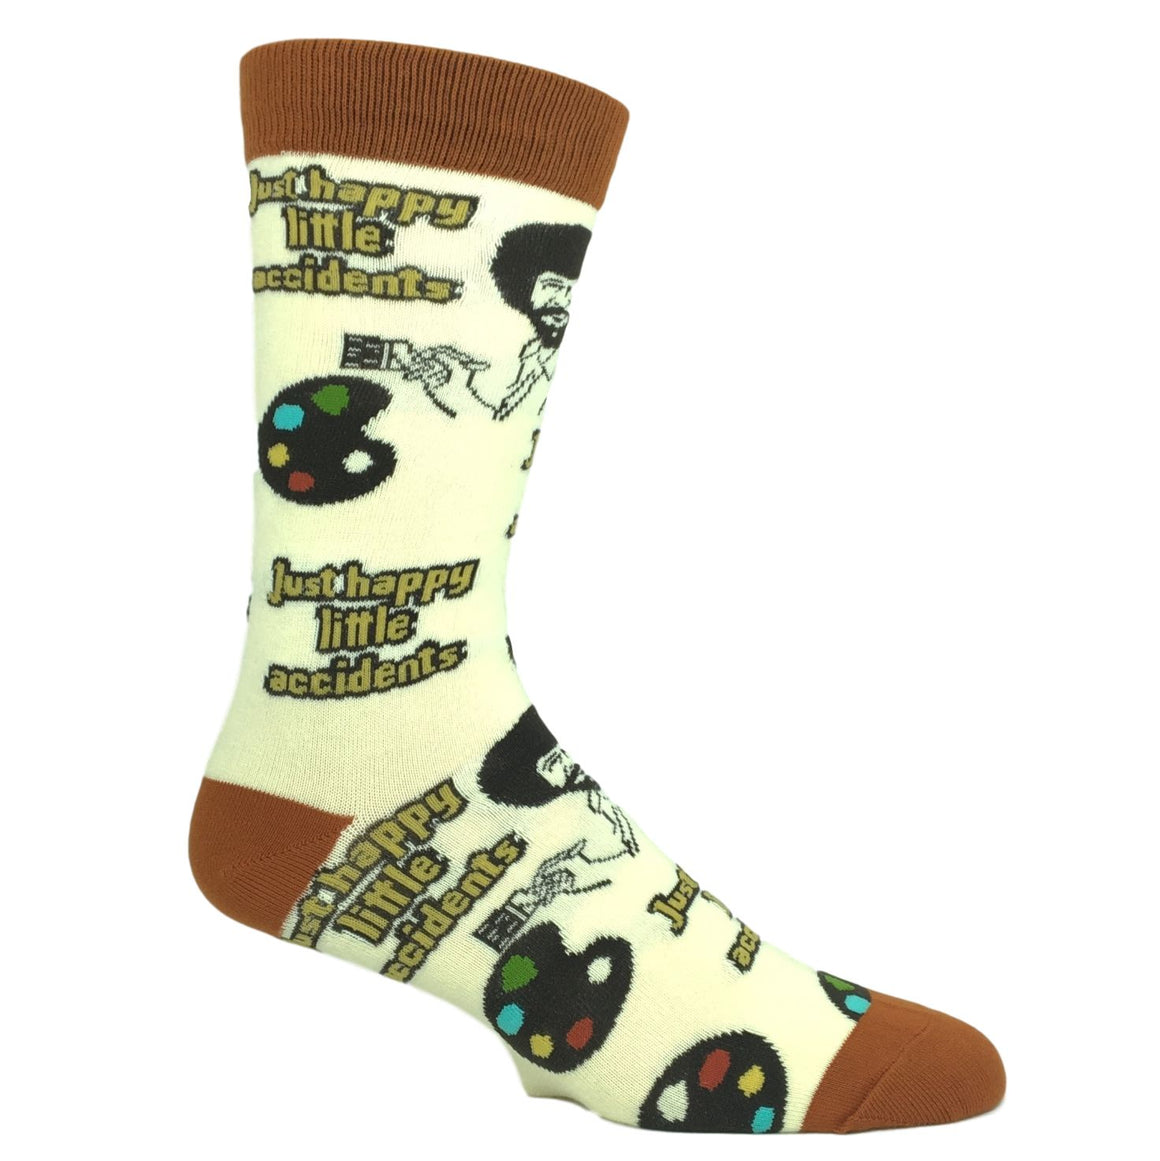 Bob Ross Happy Little Accidents Socks by Oooh Yeah Socks - The Sock Spot